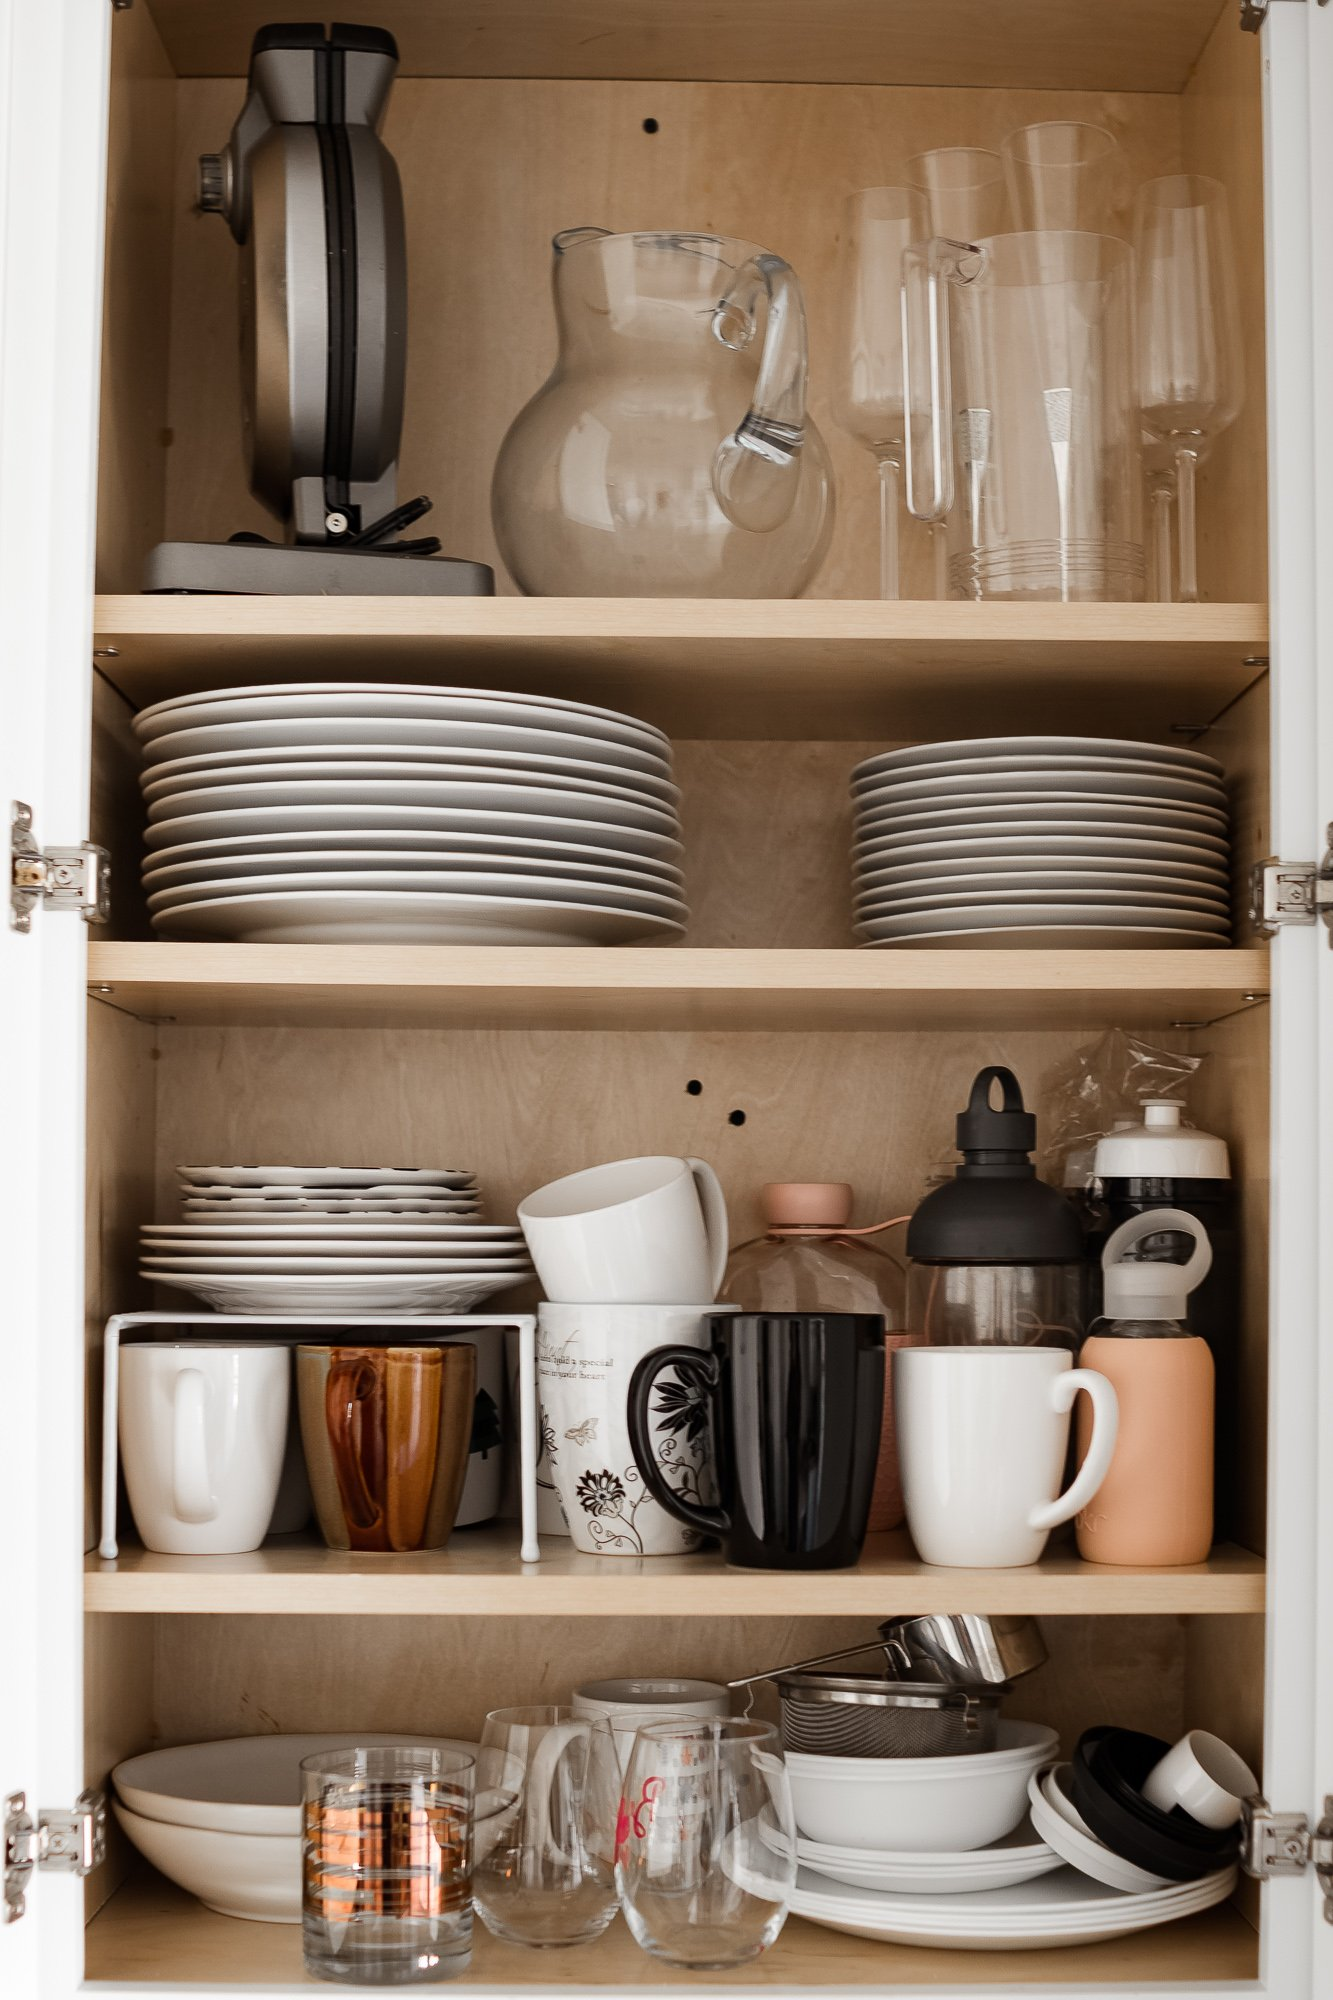 How to Organize Your Kitchen and Keep It Clean with The Container Store Kitchen Sale